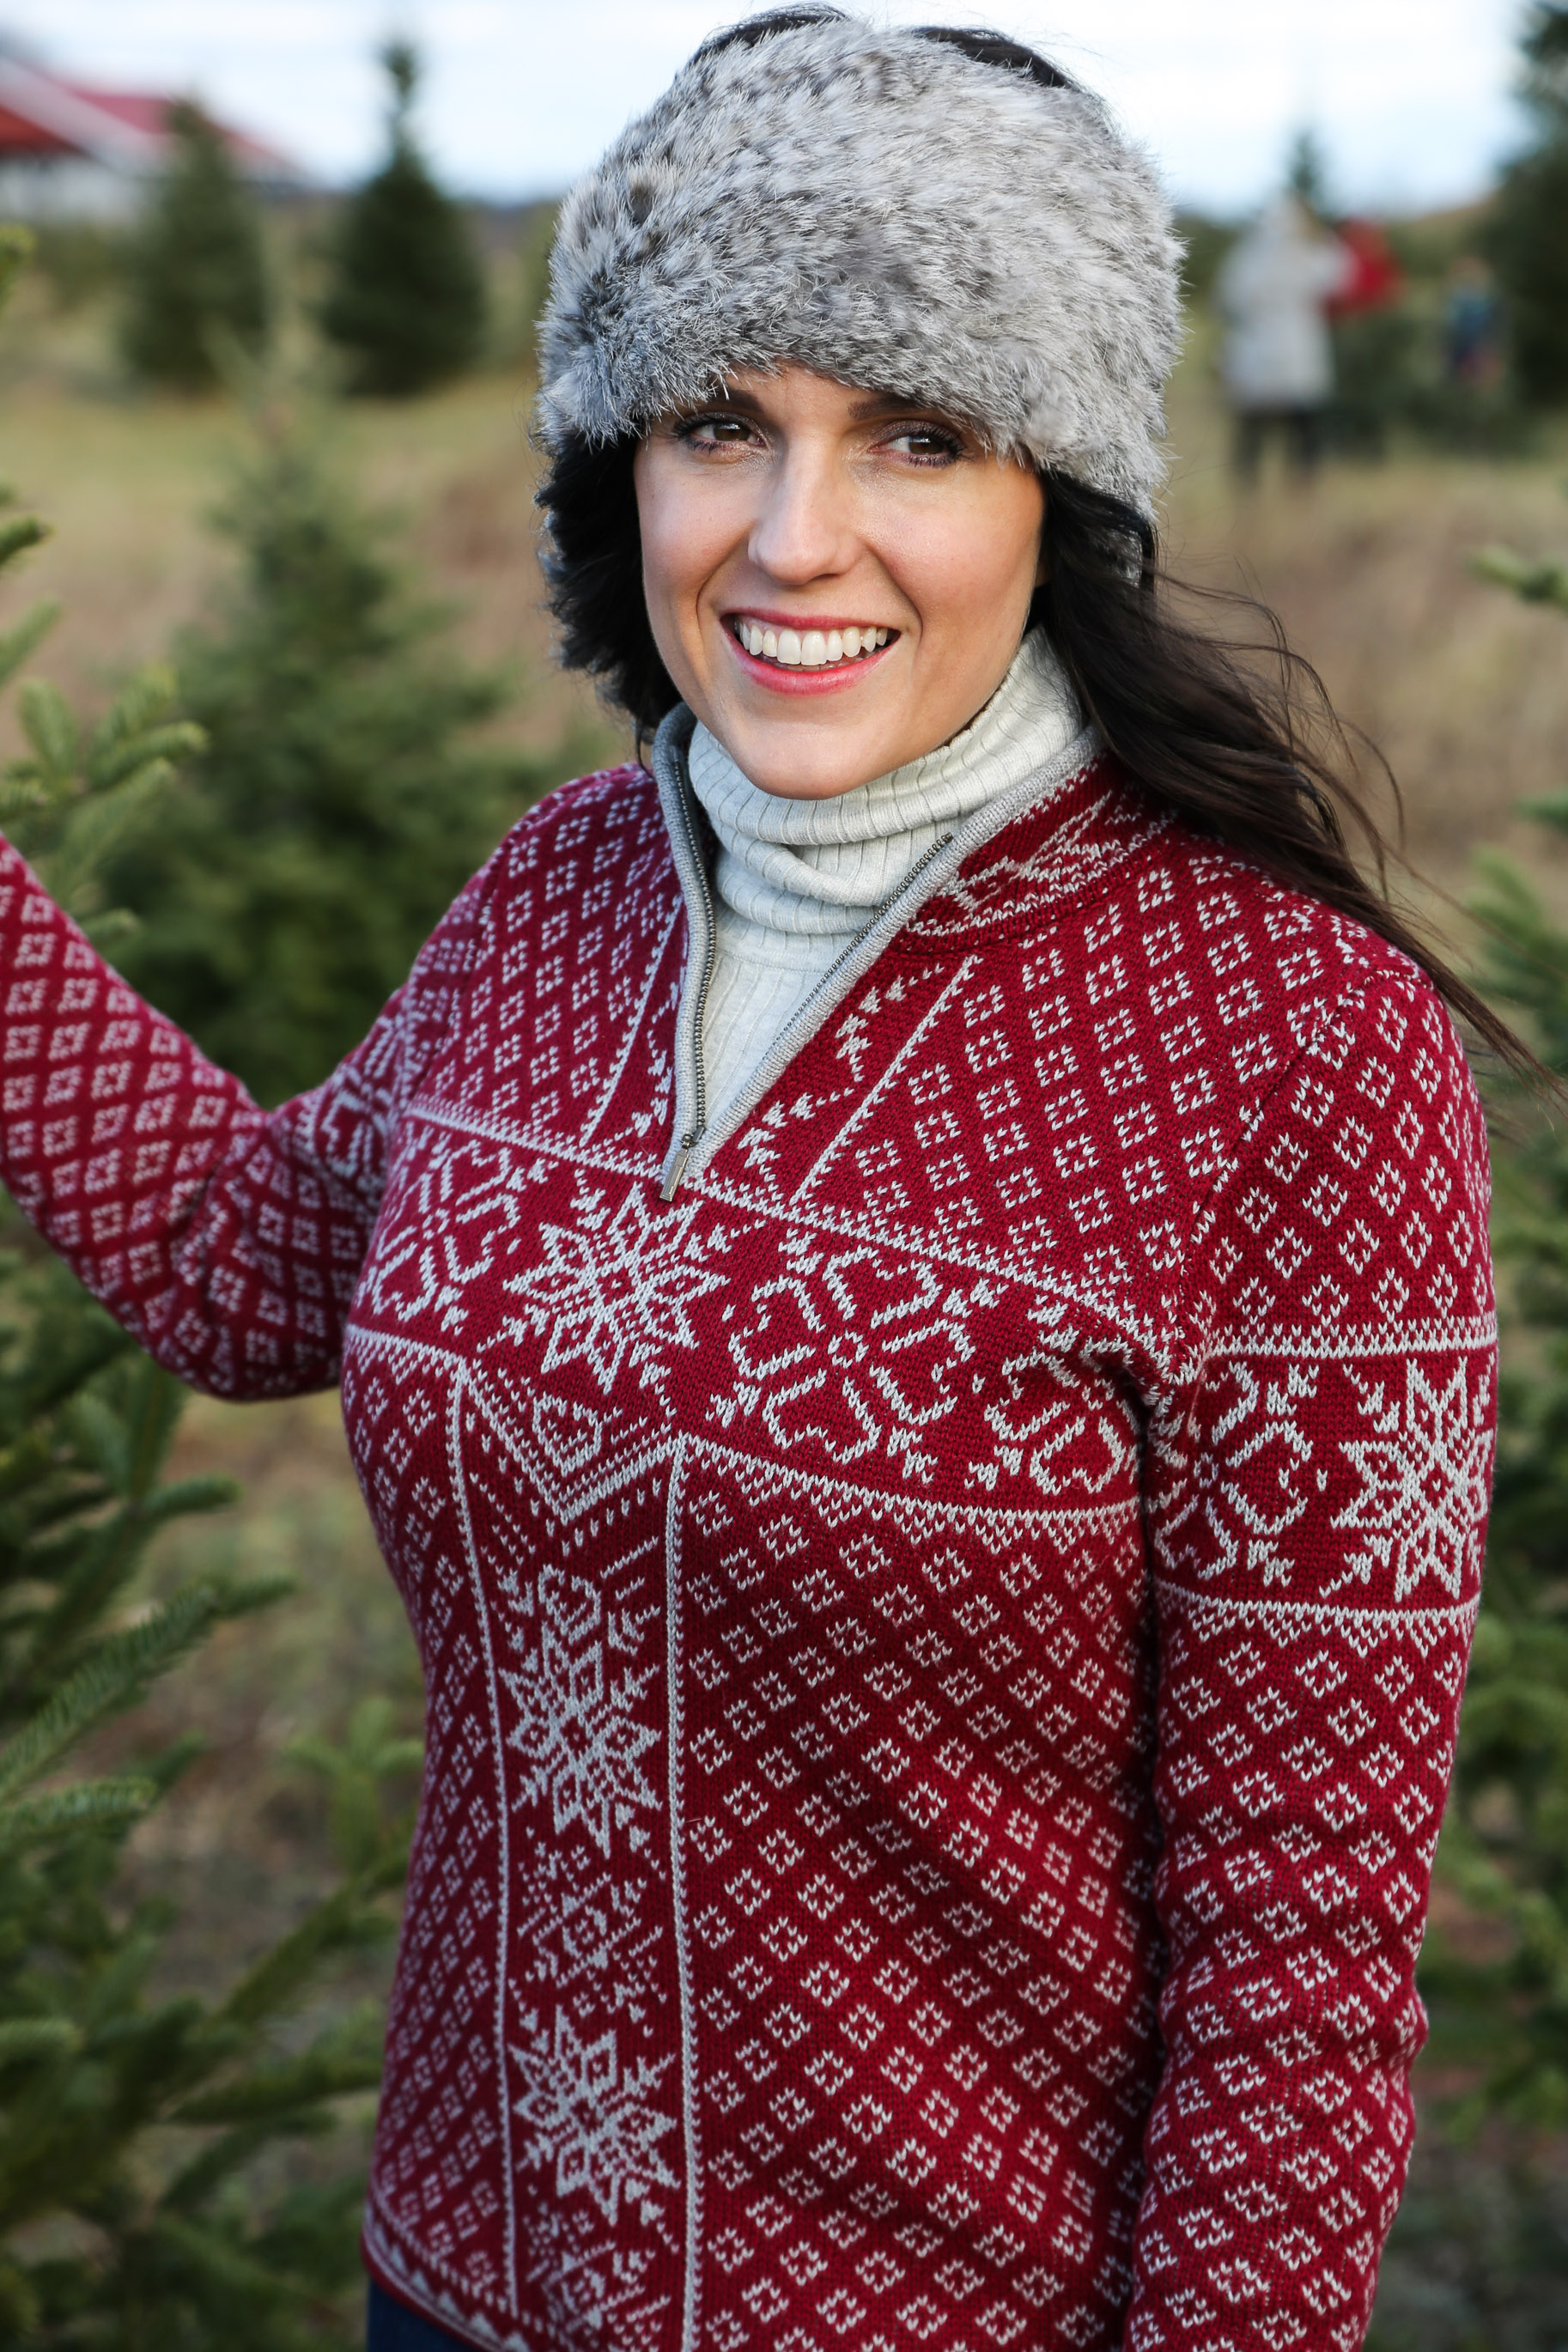 christmas-tree-cutting-outfit3.jpg